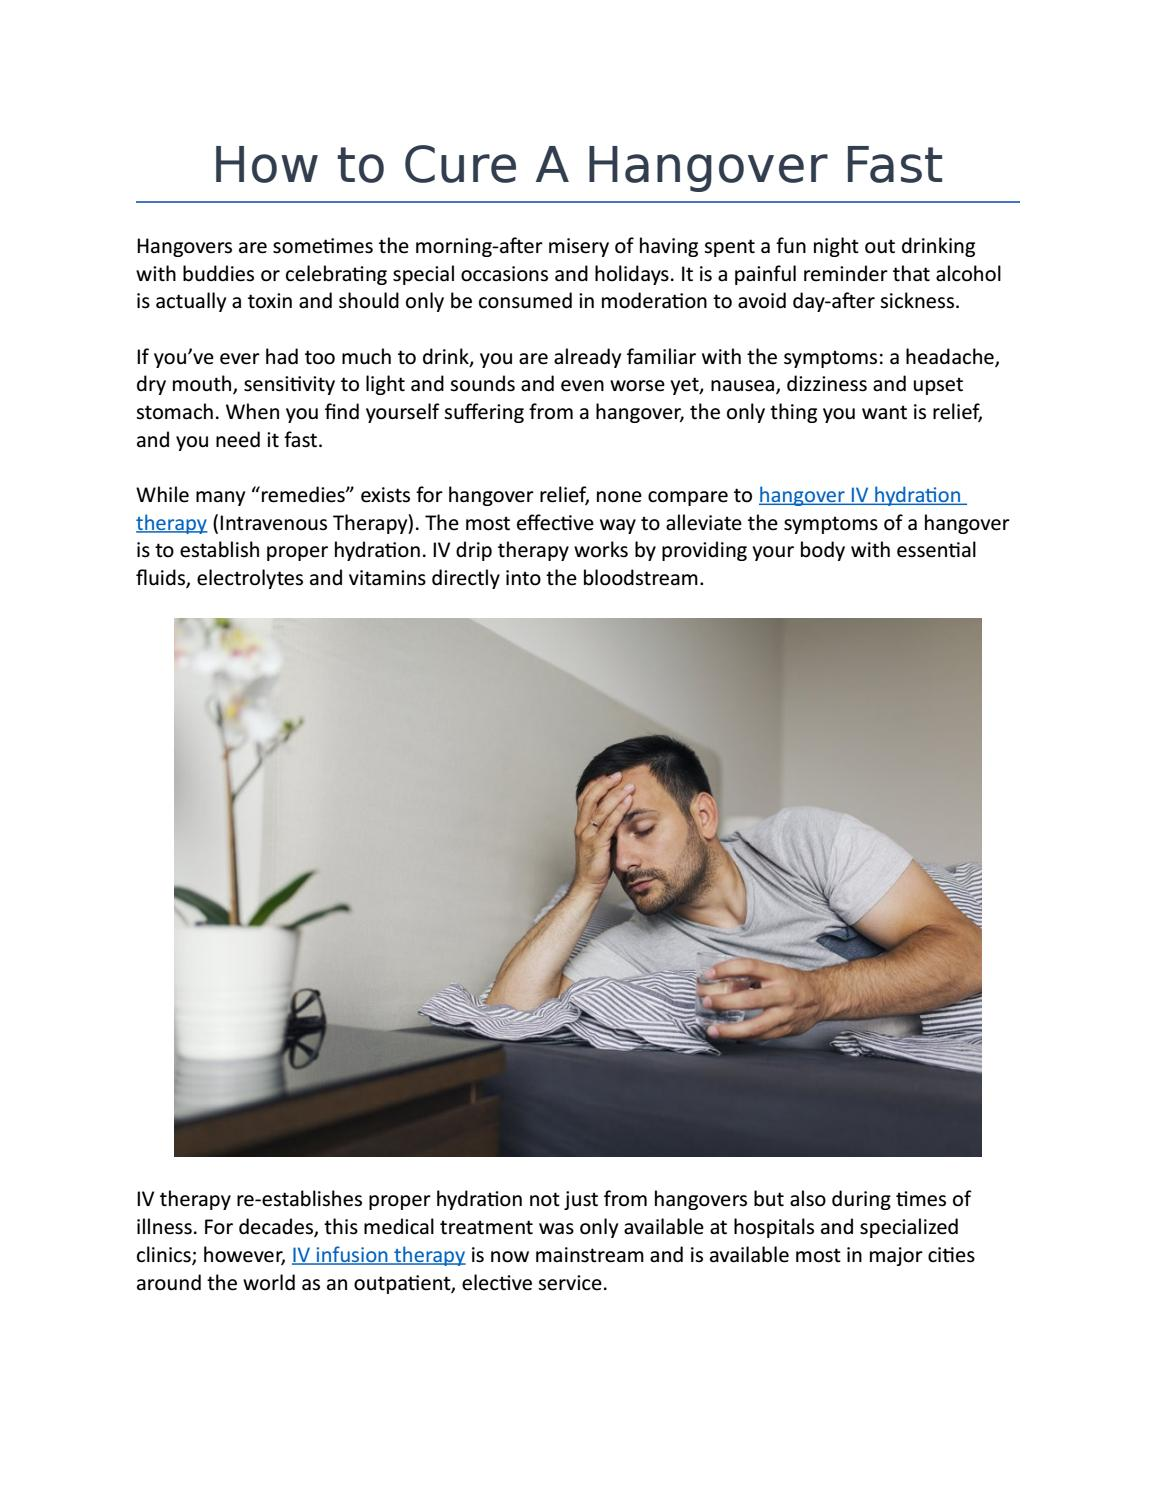 How to Cure a Hangover Fast - IVDIV com by Peter Lee - issuu